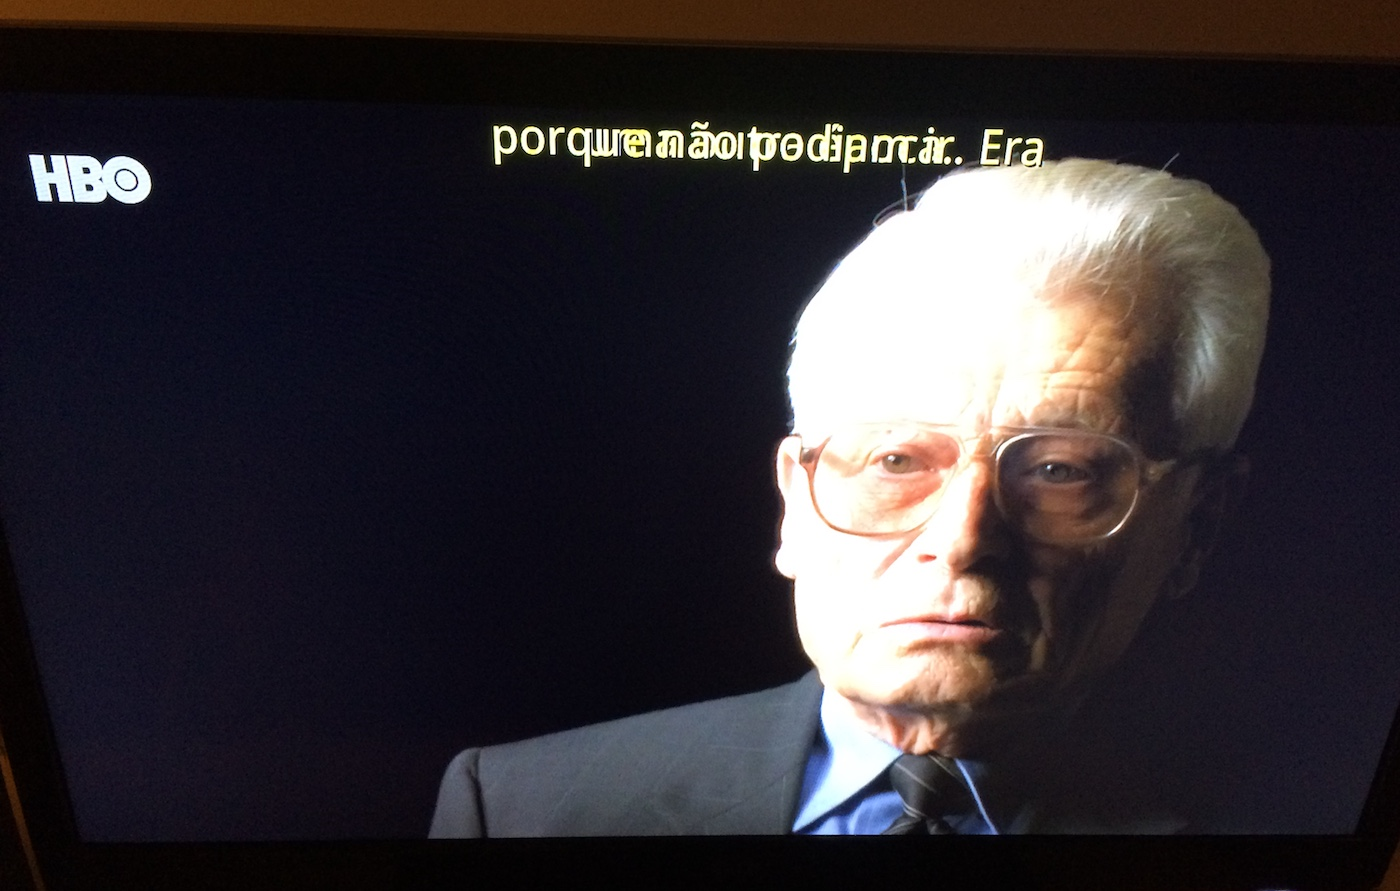 HBO Go and Subtitle issues - Chromecast Help